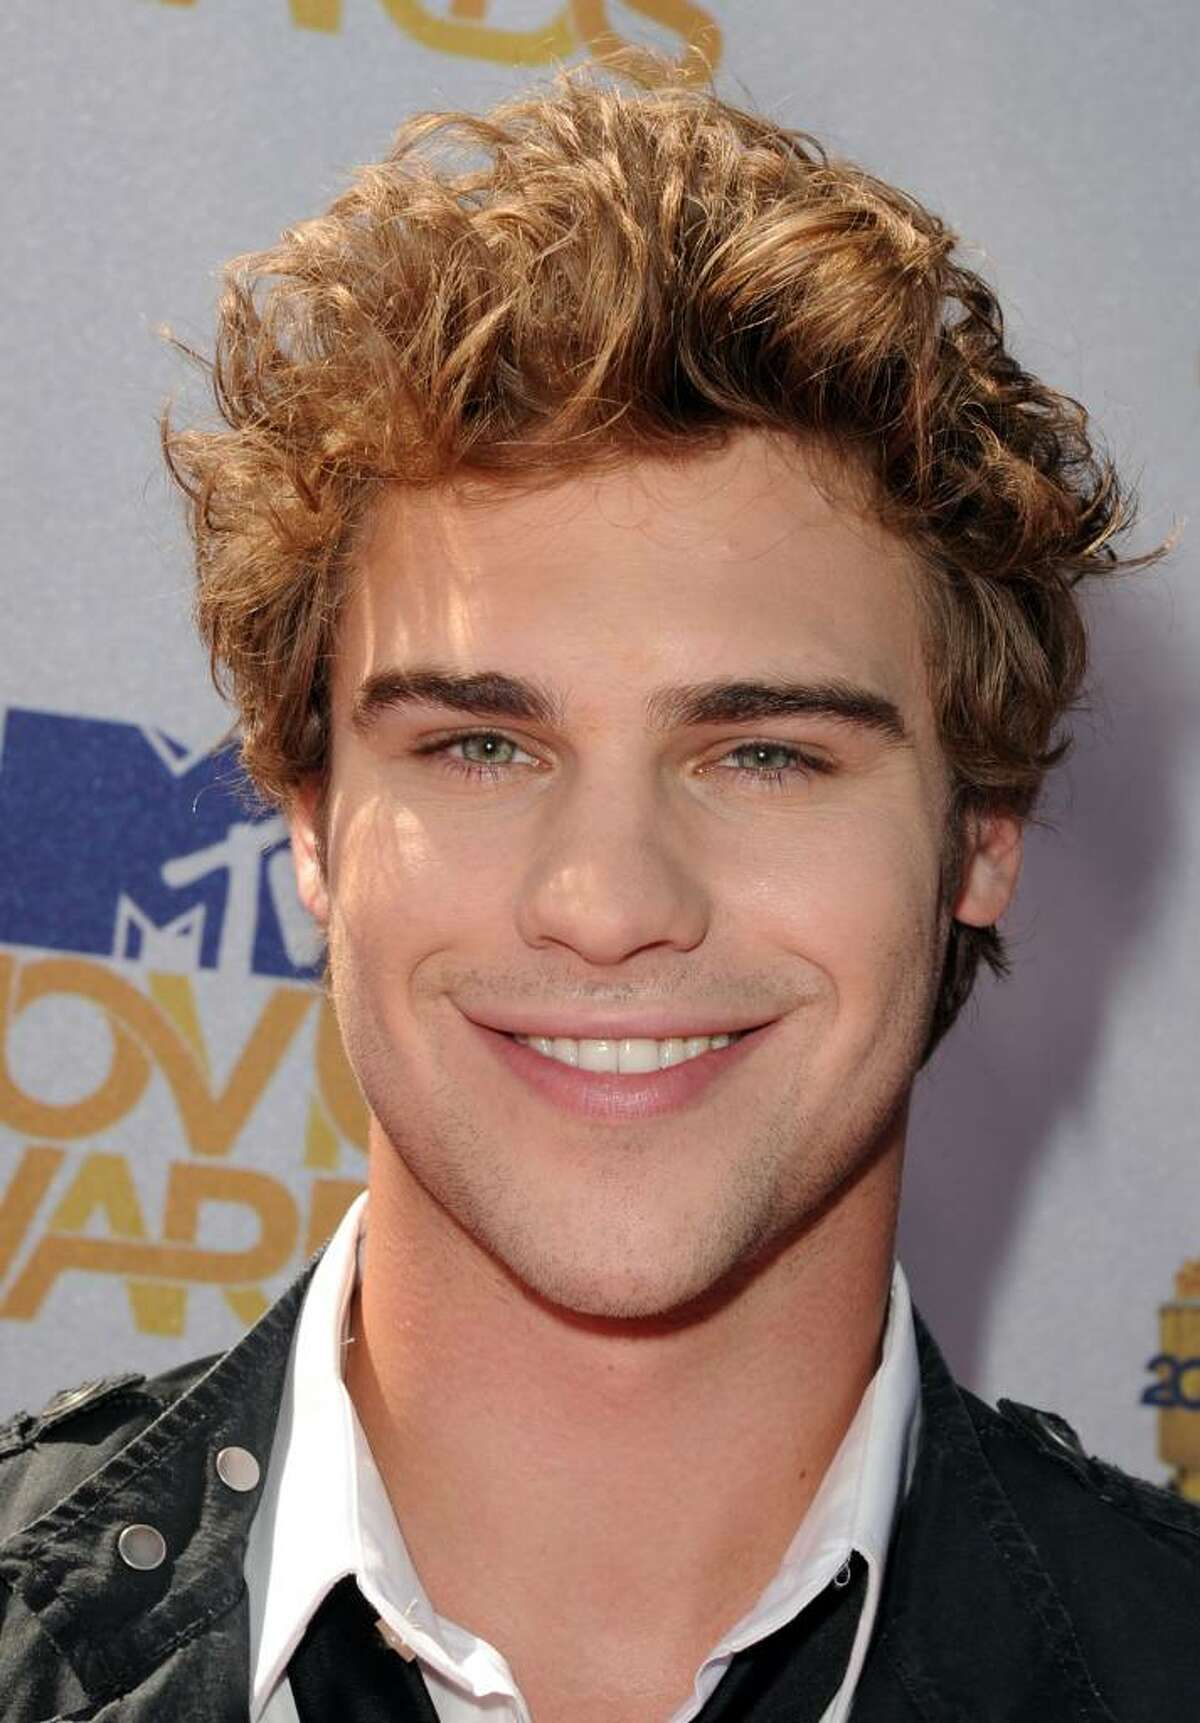 UNIVERSAL CITY, CA - JUNE 06: Grey Damon arrives at the 2010 MTV Movie Awards held at the Gibson Amphitheatre at Universal Studios on June 6, 2010 in Universal City, California. (Photo by Kevin Winter/Getty Images) *** Local Caption *** Grey Damon